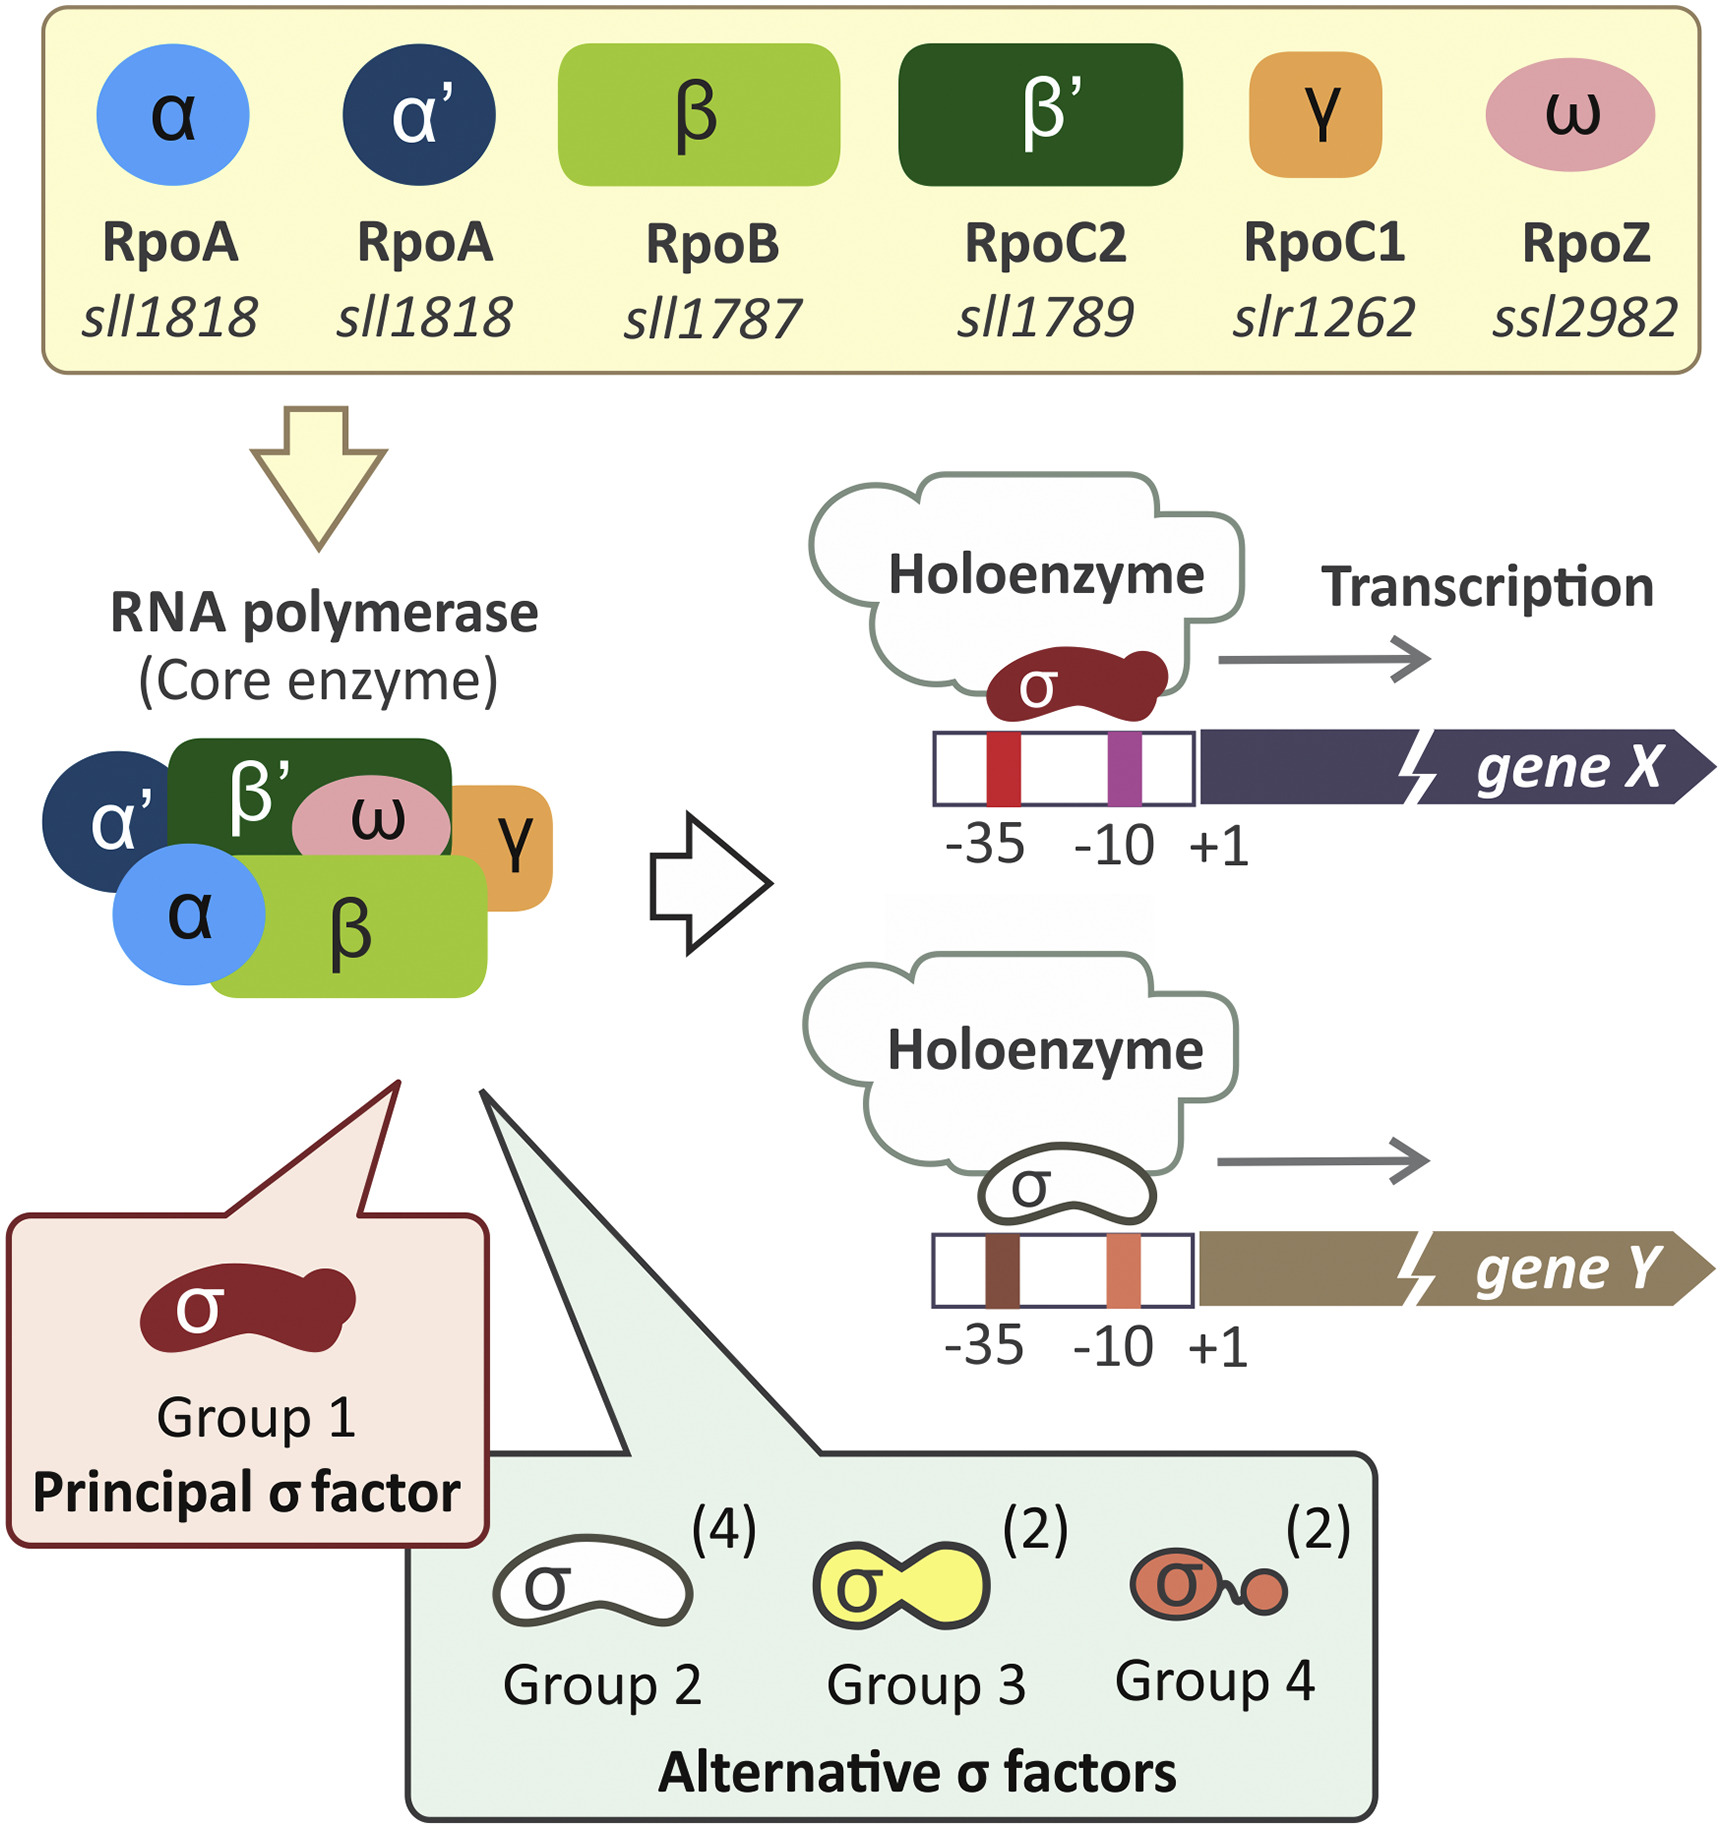 A schematic of the components of the bacterial RNA polymerase and the role of a sigma factor in transcription (Srivastava et al. 2020, Figure 1)